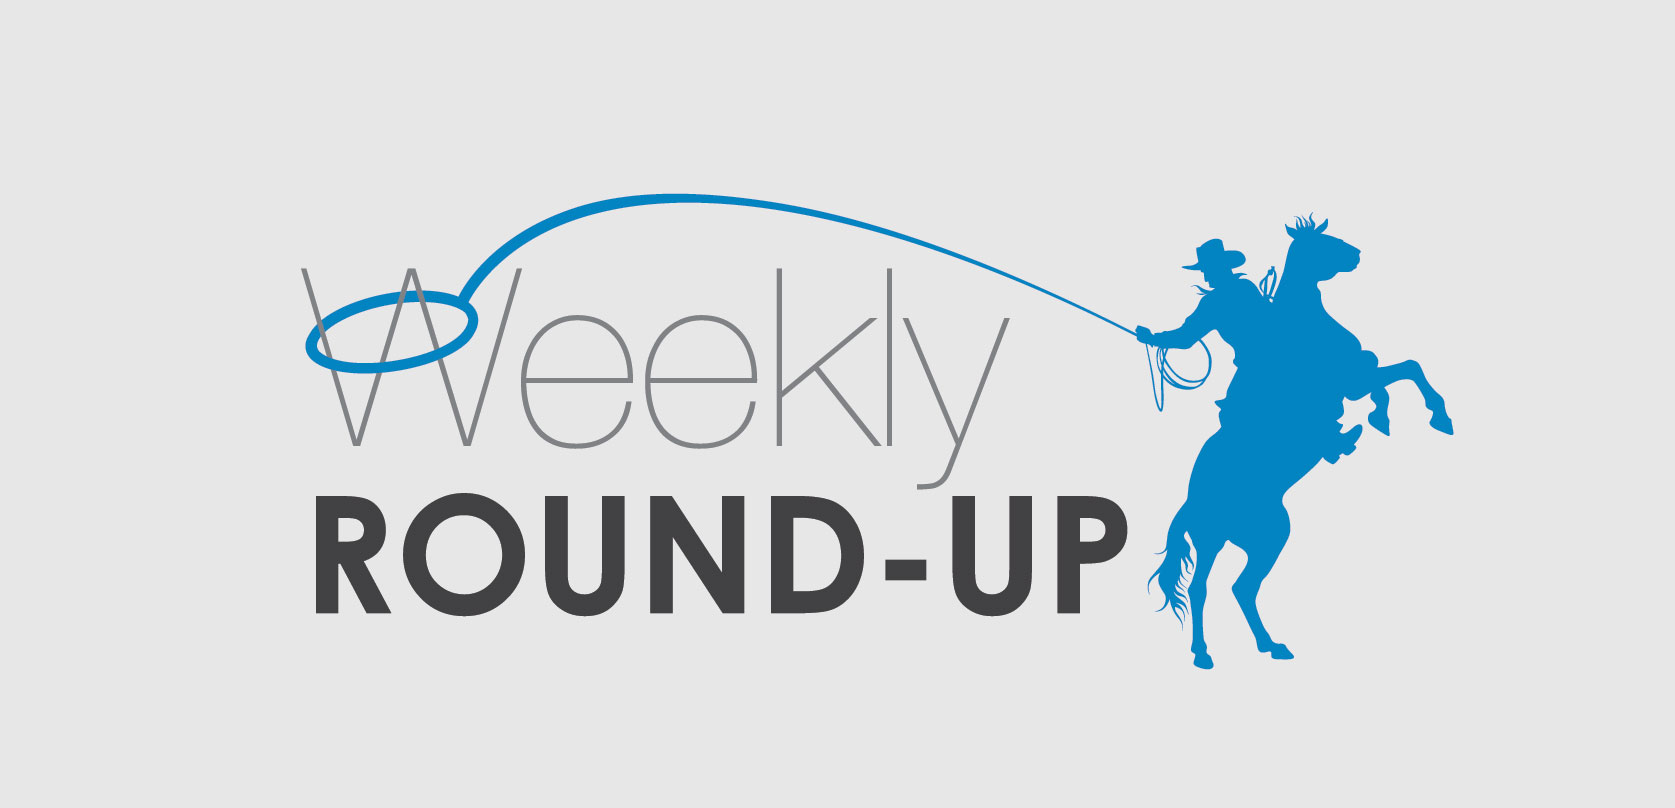 Weekly Round-Up: On Building a Fulfilling Life and Career, 15 Body Language Mistakes & Simple Ways to Boost Your Productivity